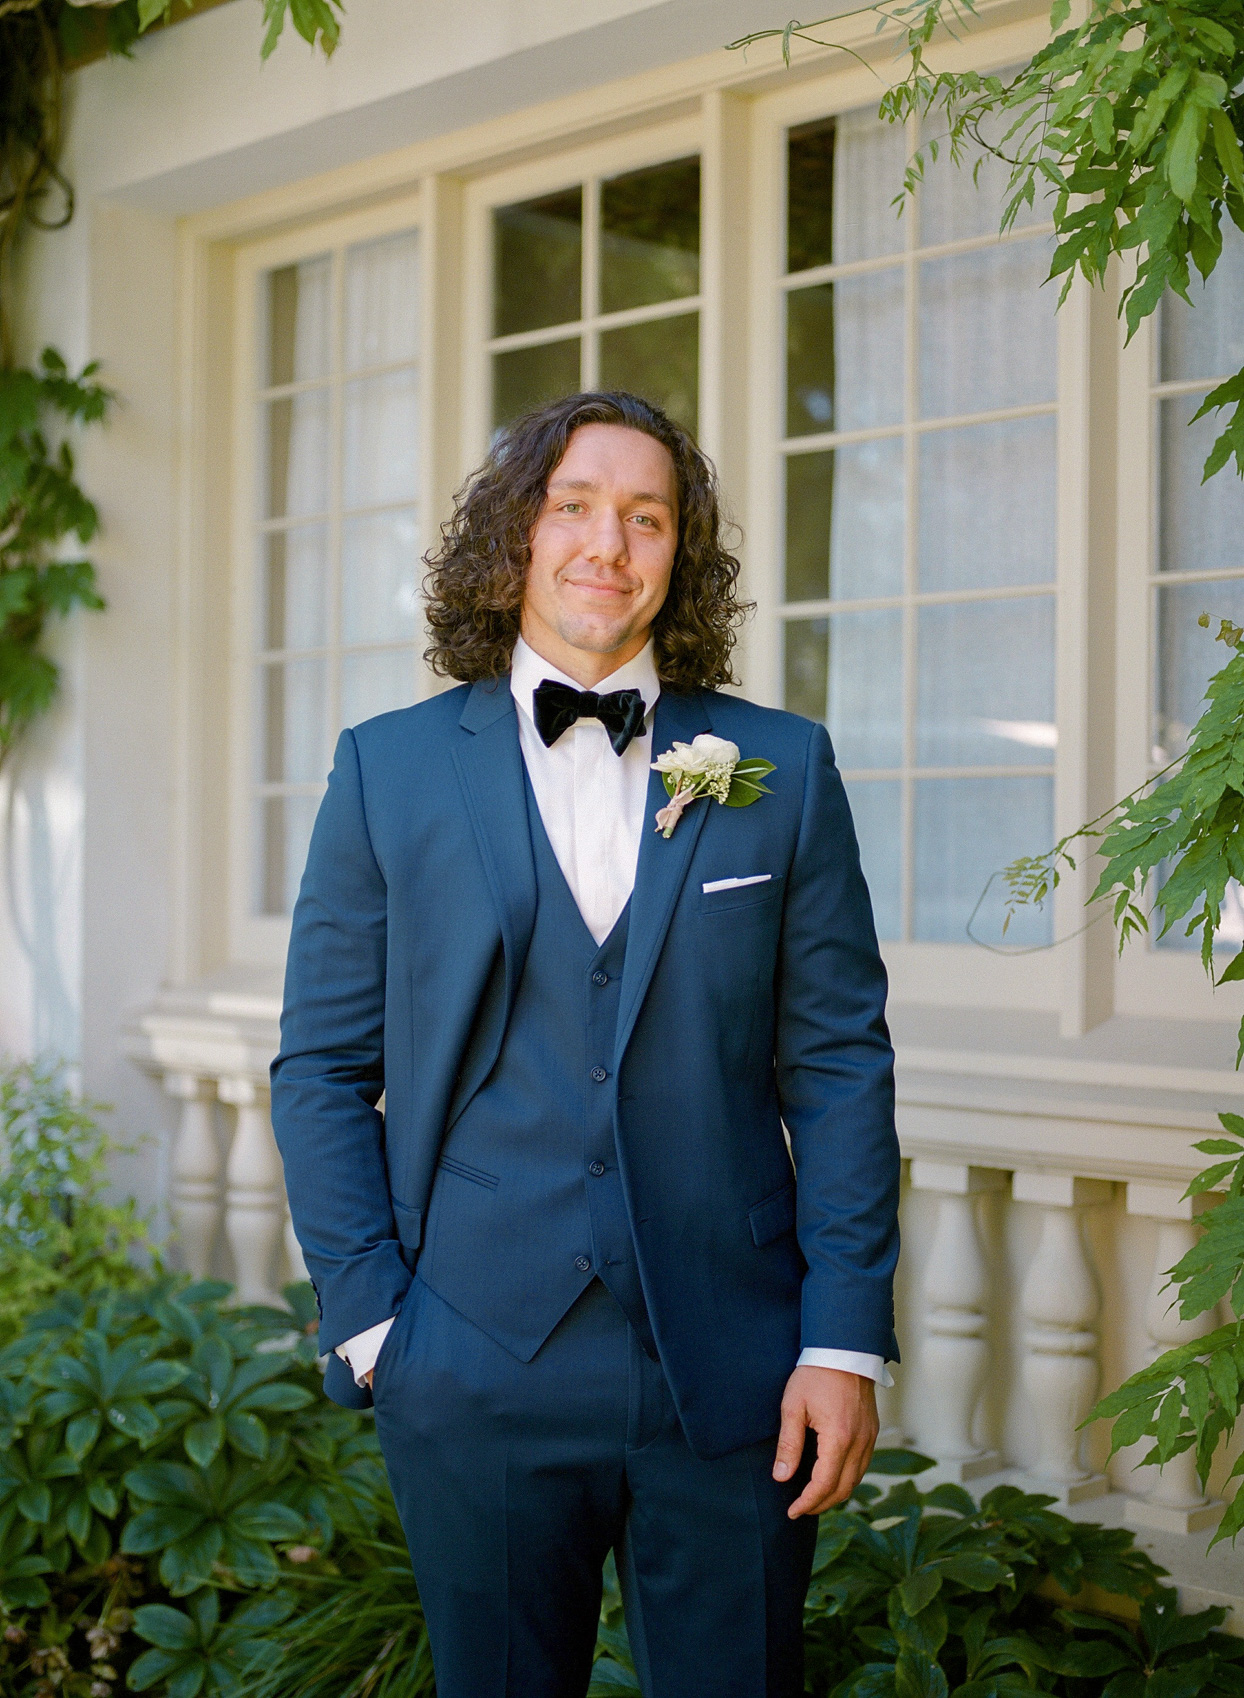 groom smiling wearing navy blue suit with white floral boutonniere